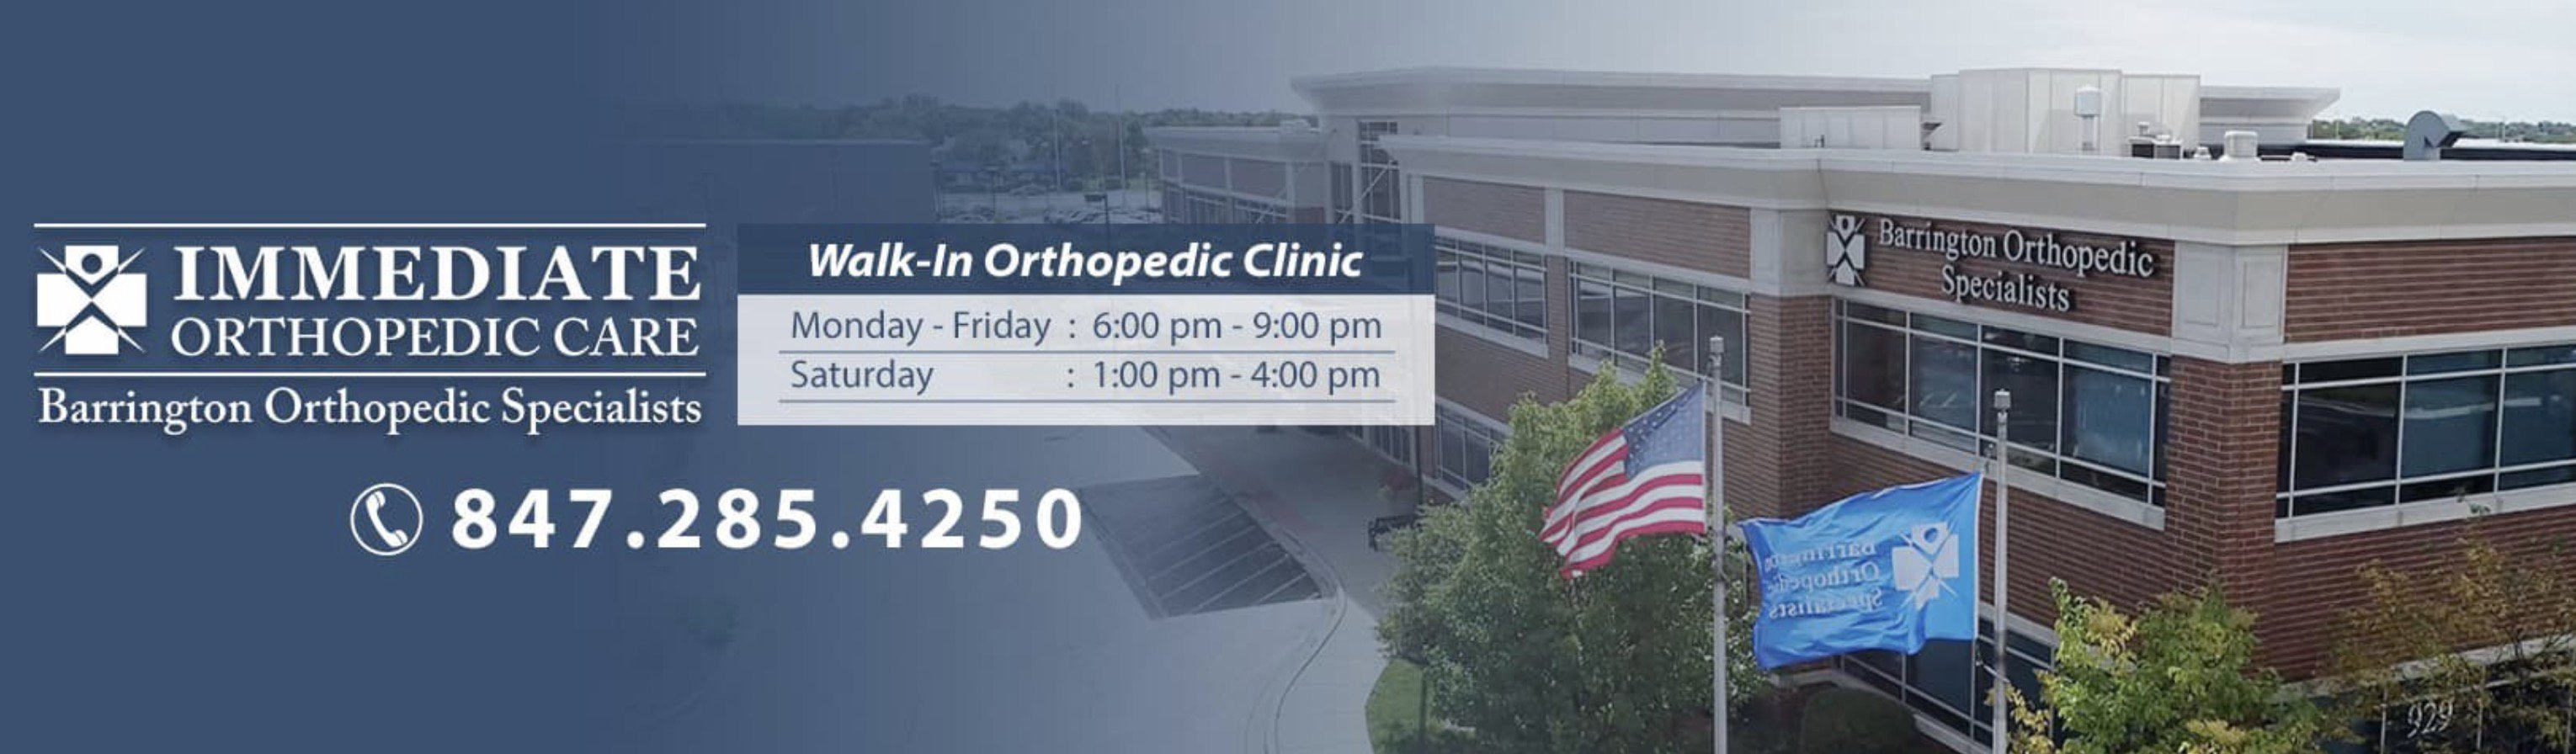 Barrington Orthopedic Specialist's Exterior